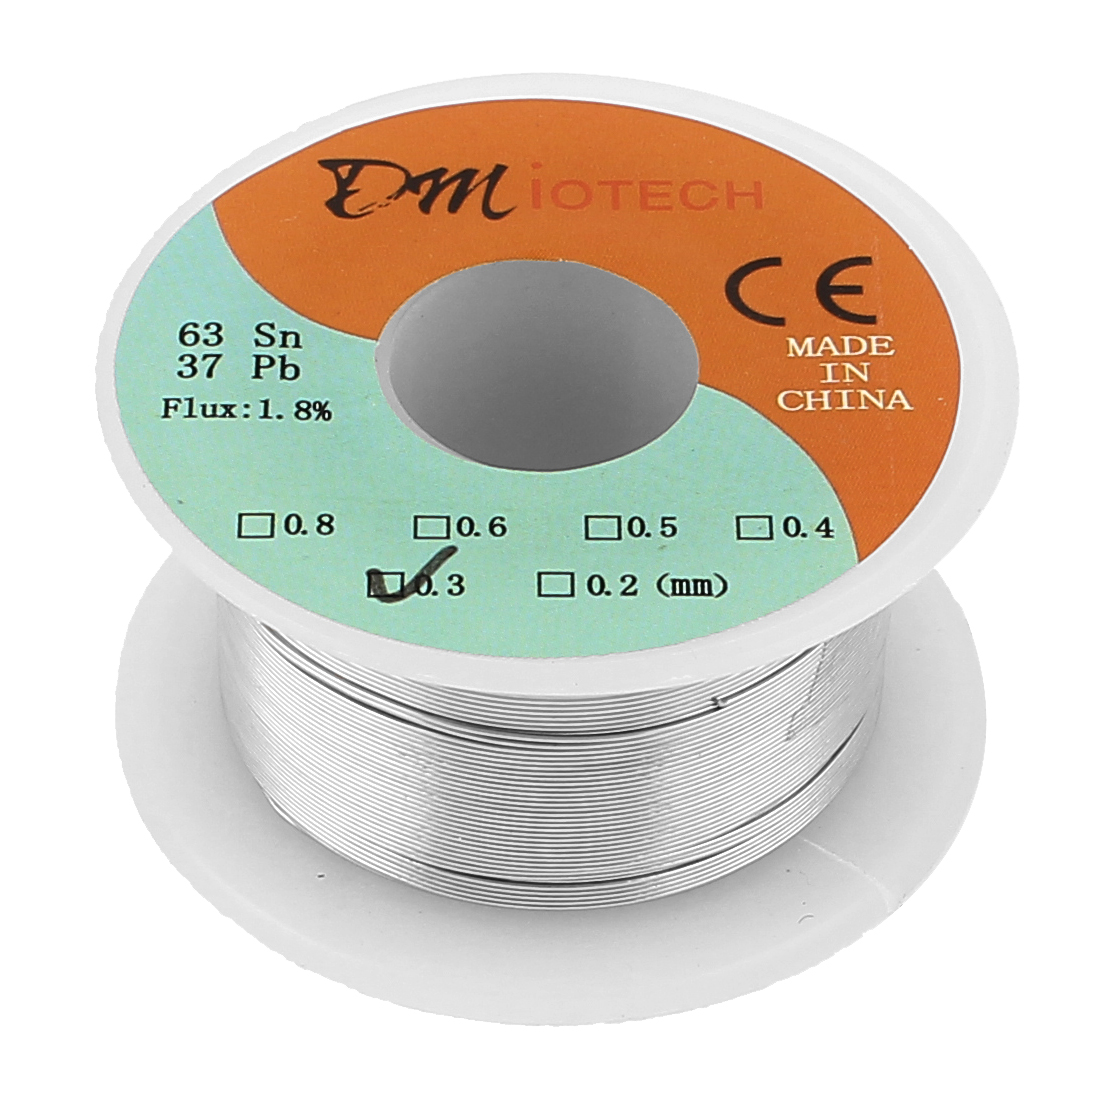 35g 0.3mm Rosin Core Solder Tin Lead Solder Wire 63/37 for Electrical Soldering